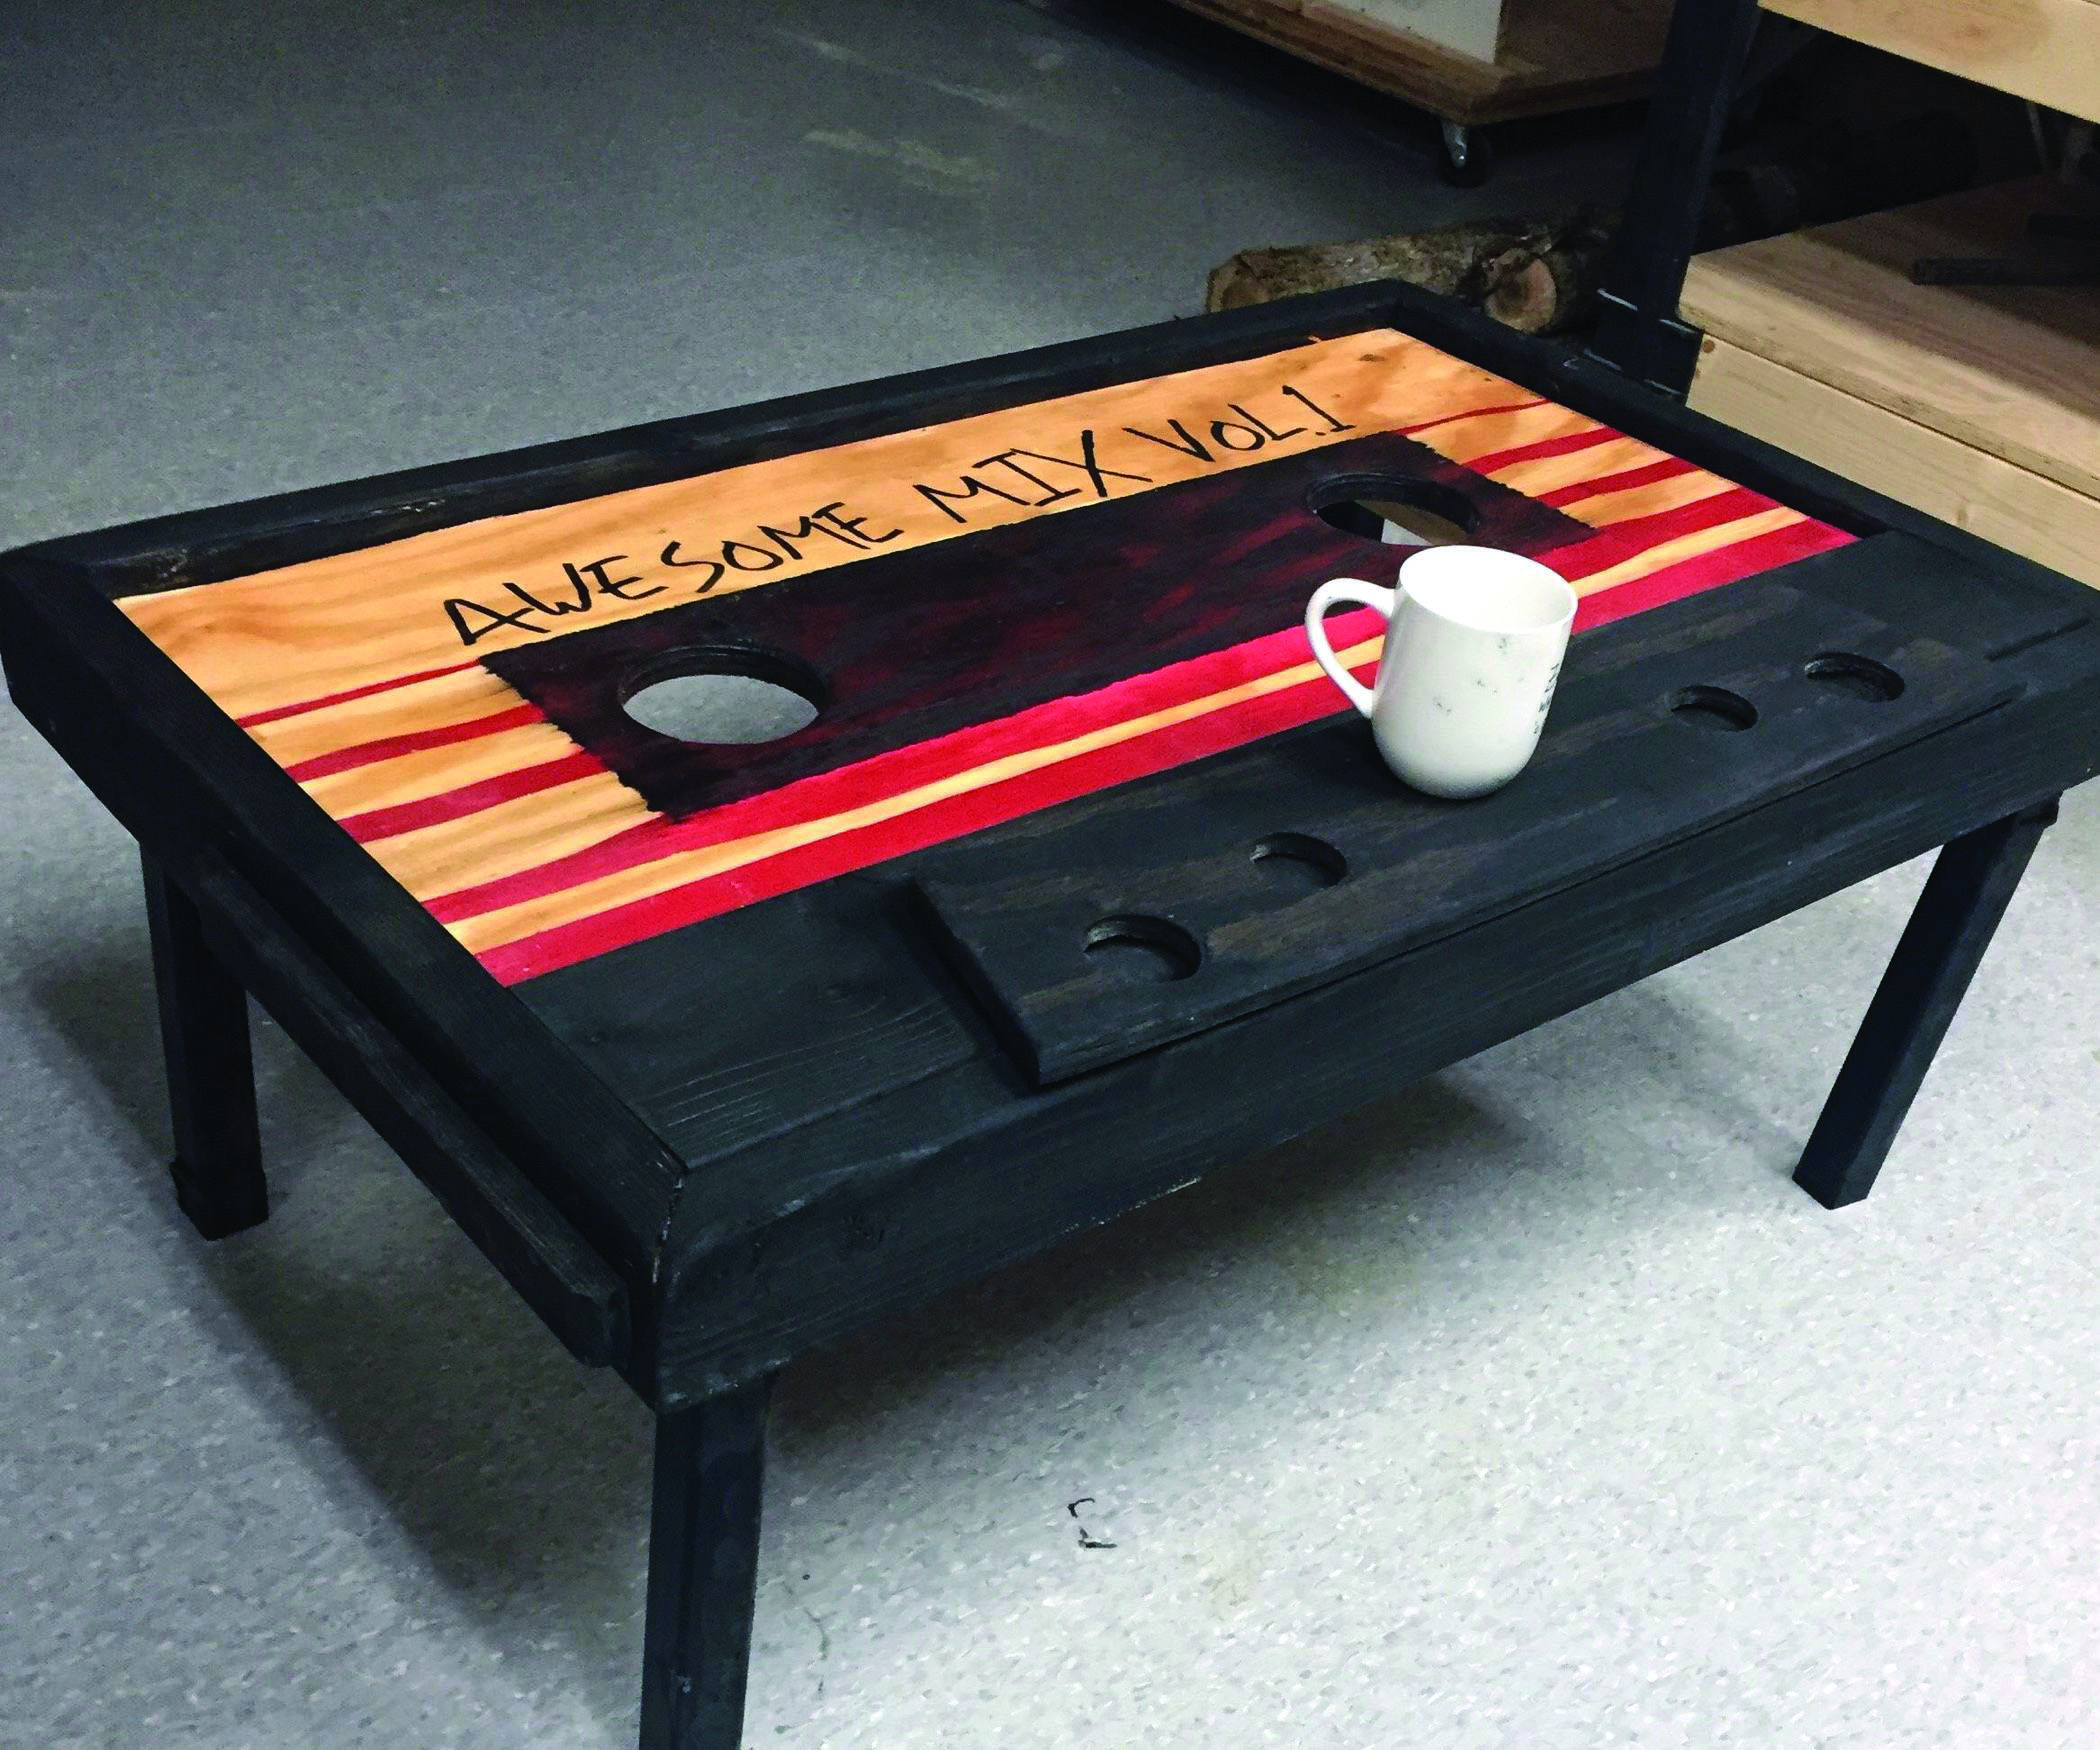 Awesome coffee table ideas upcycled furniture diy diy